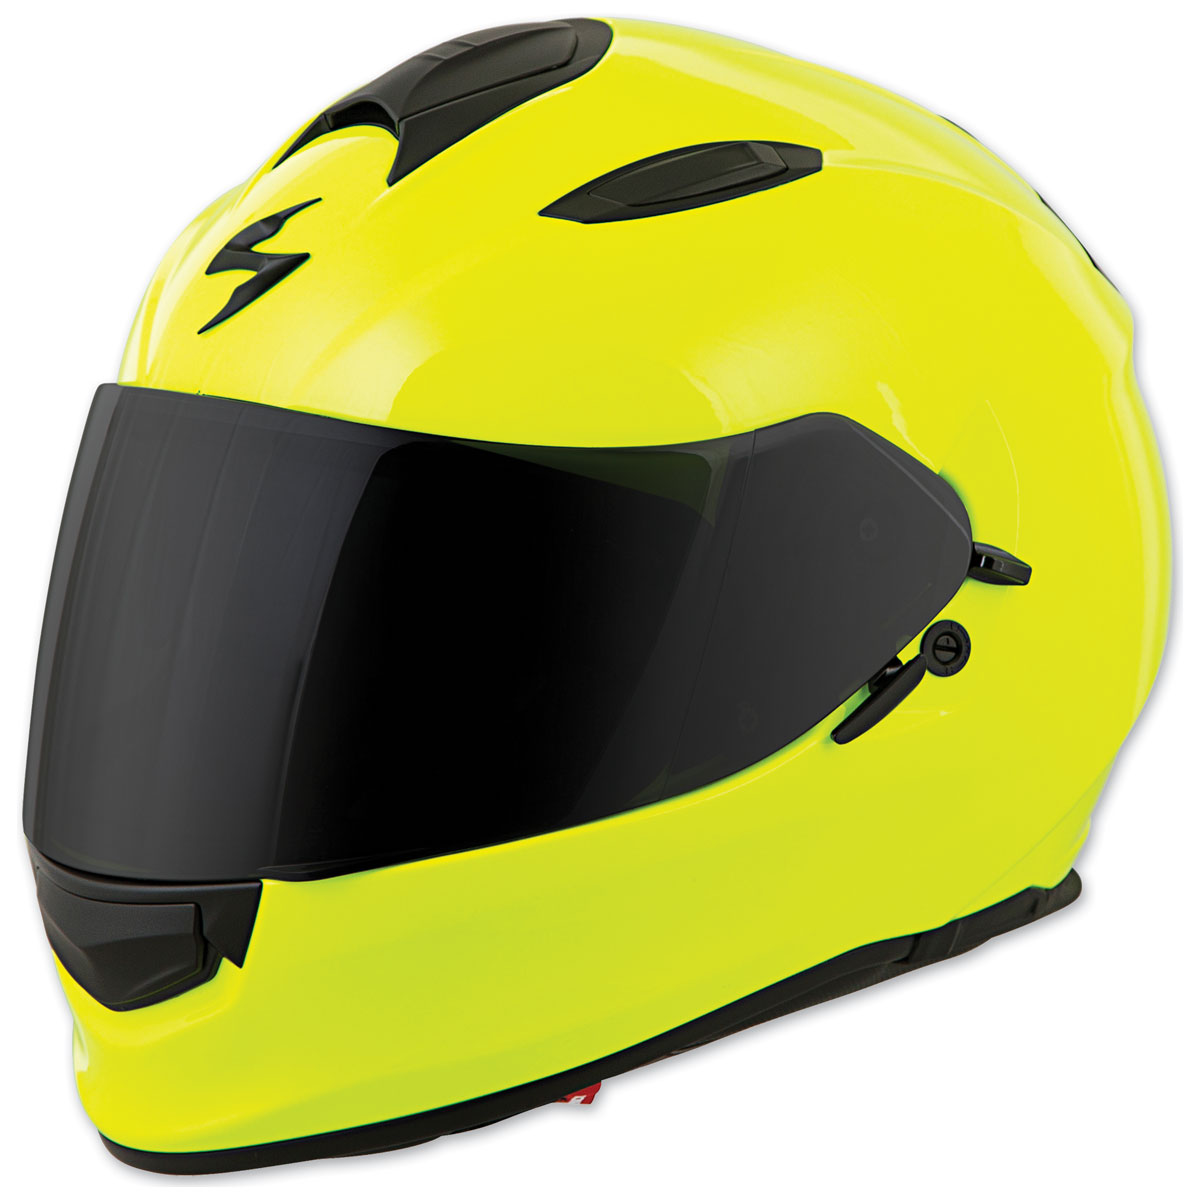 Scorpion EXO EXO-T510 Solid Neon Full Face Helmet